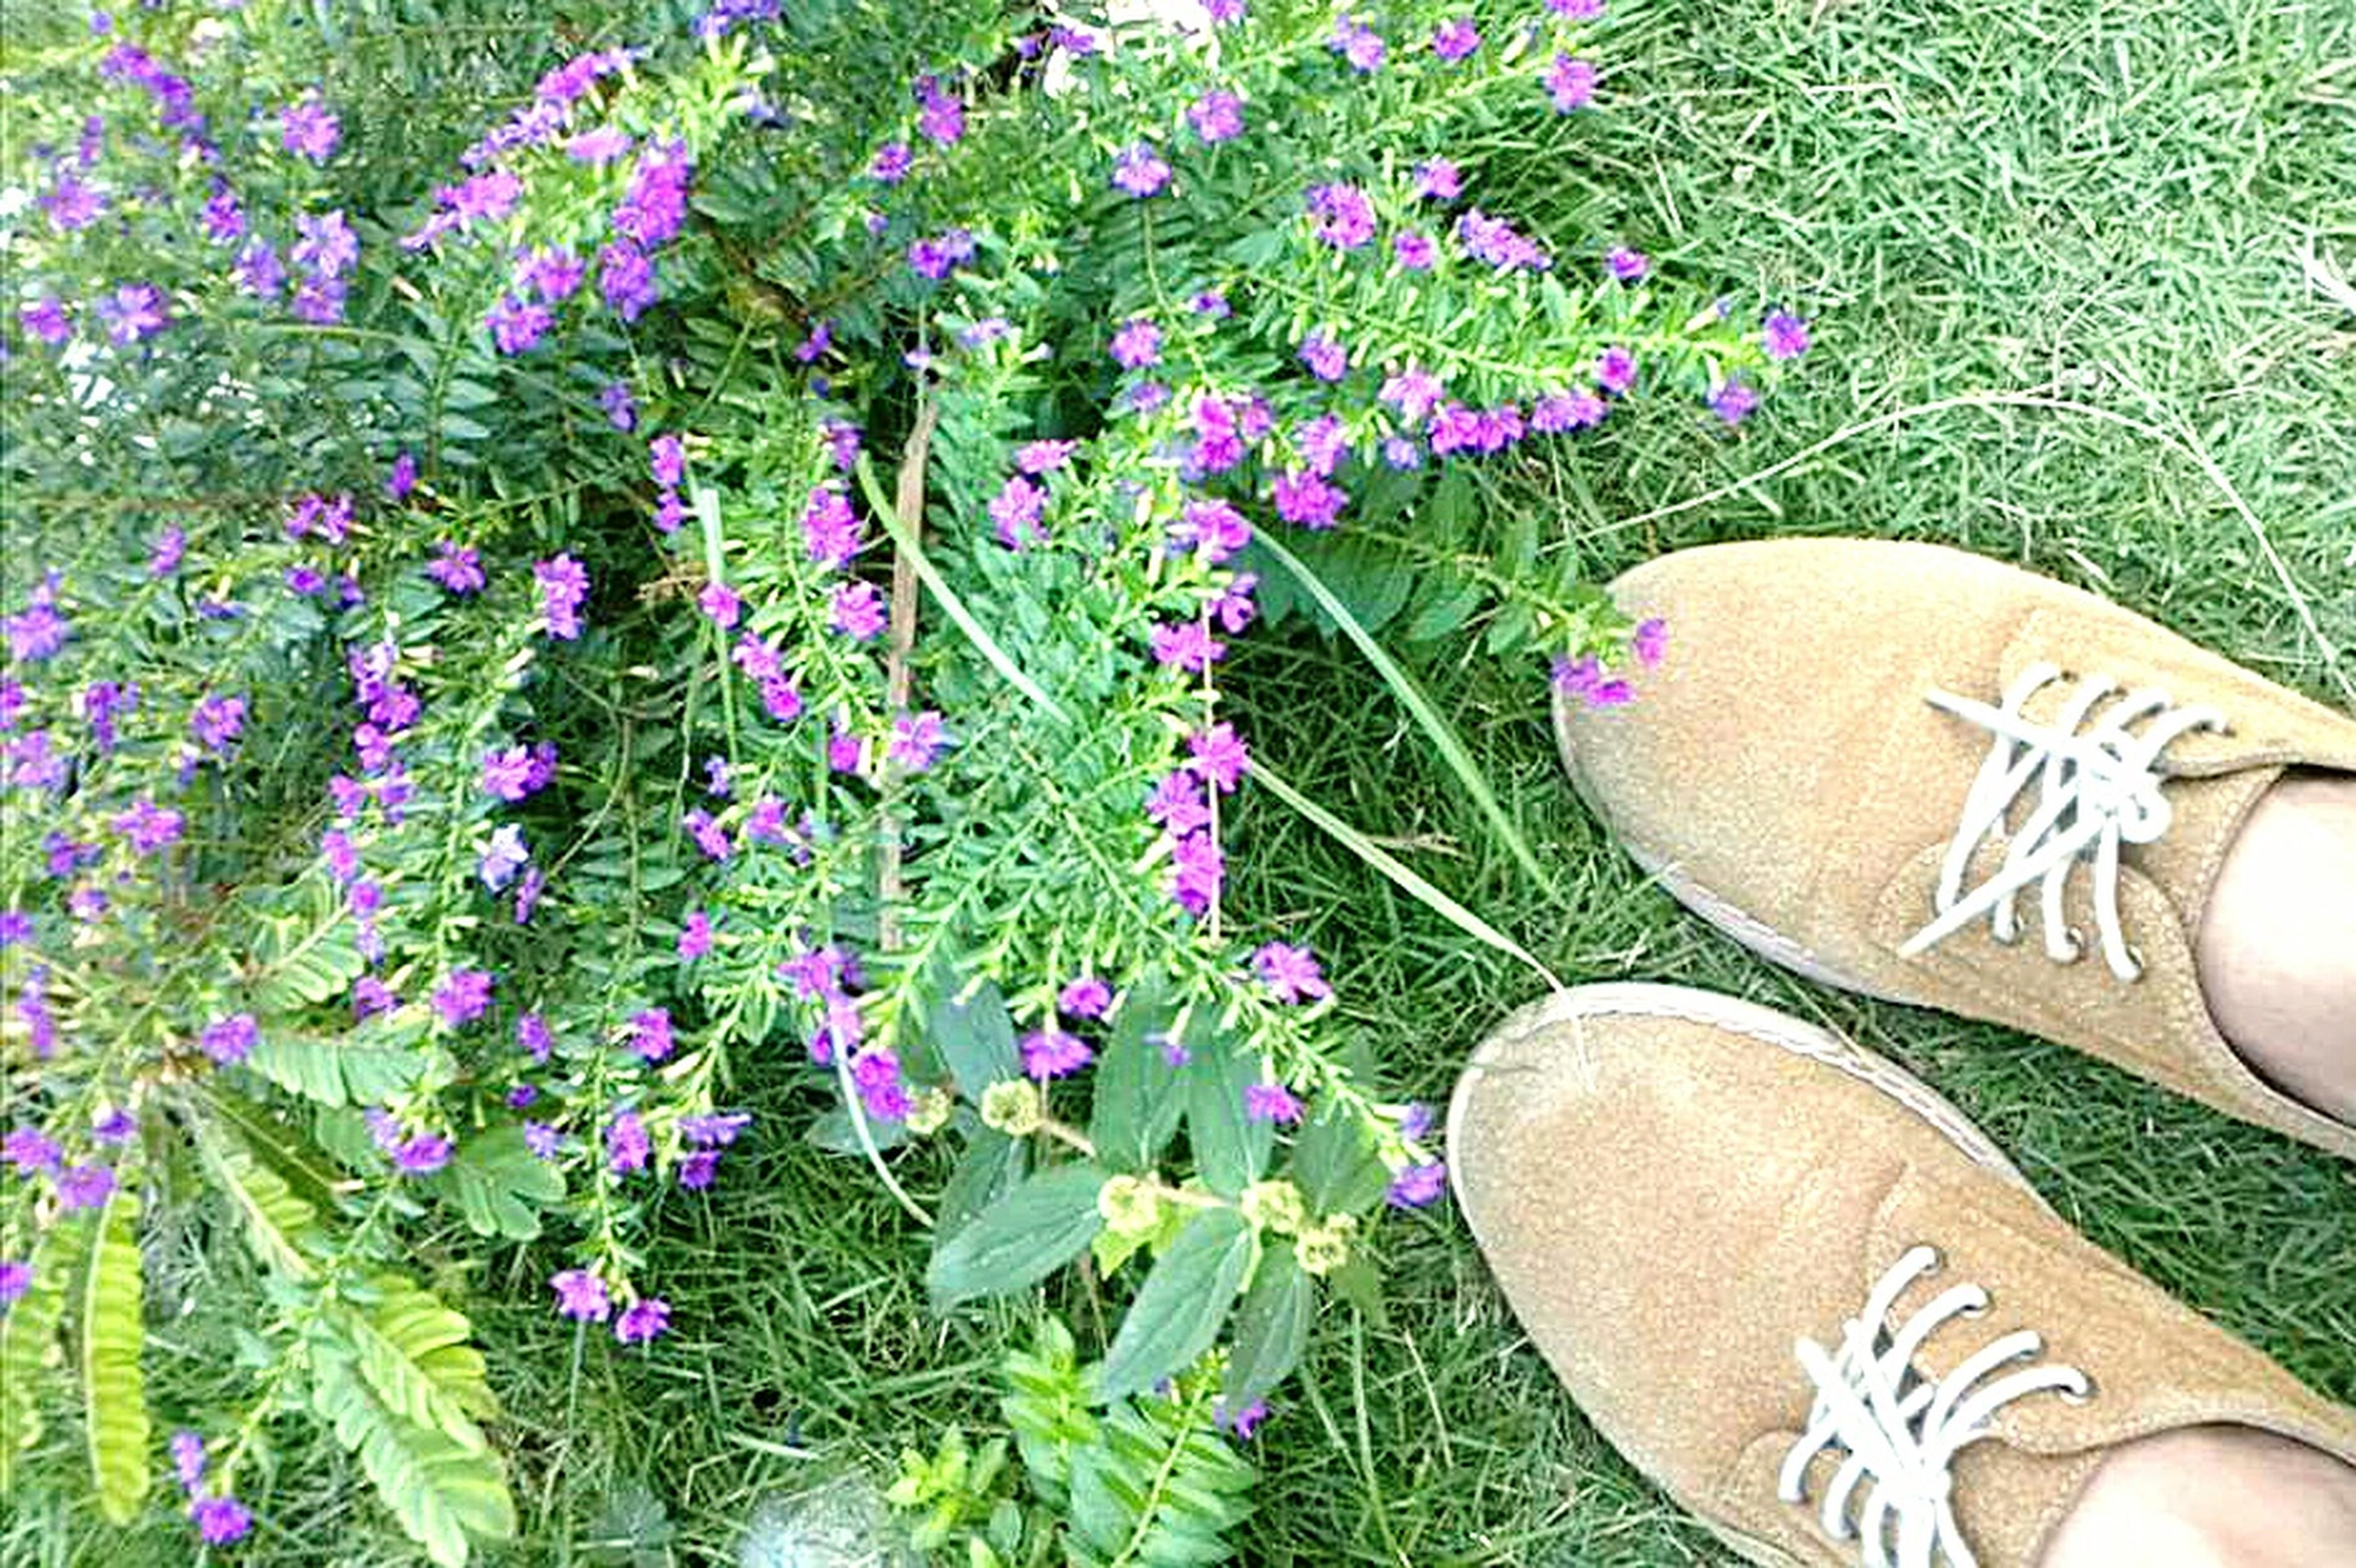 high angle view, flower, growth, low section, shoe, personal perspective, grass, field, person, plant, outdoors, nature, leaf, day, sunlight, part of, freshness